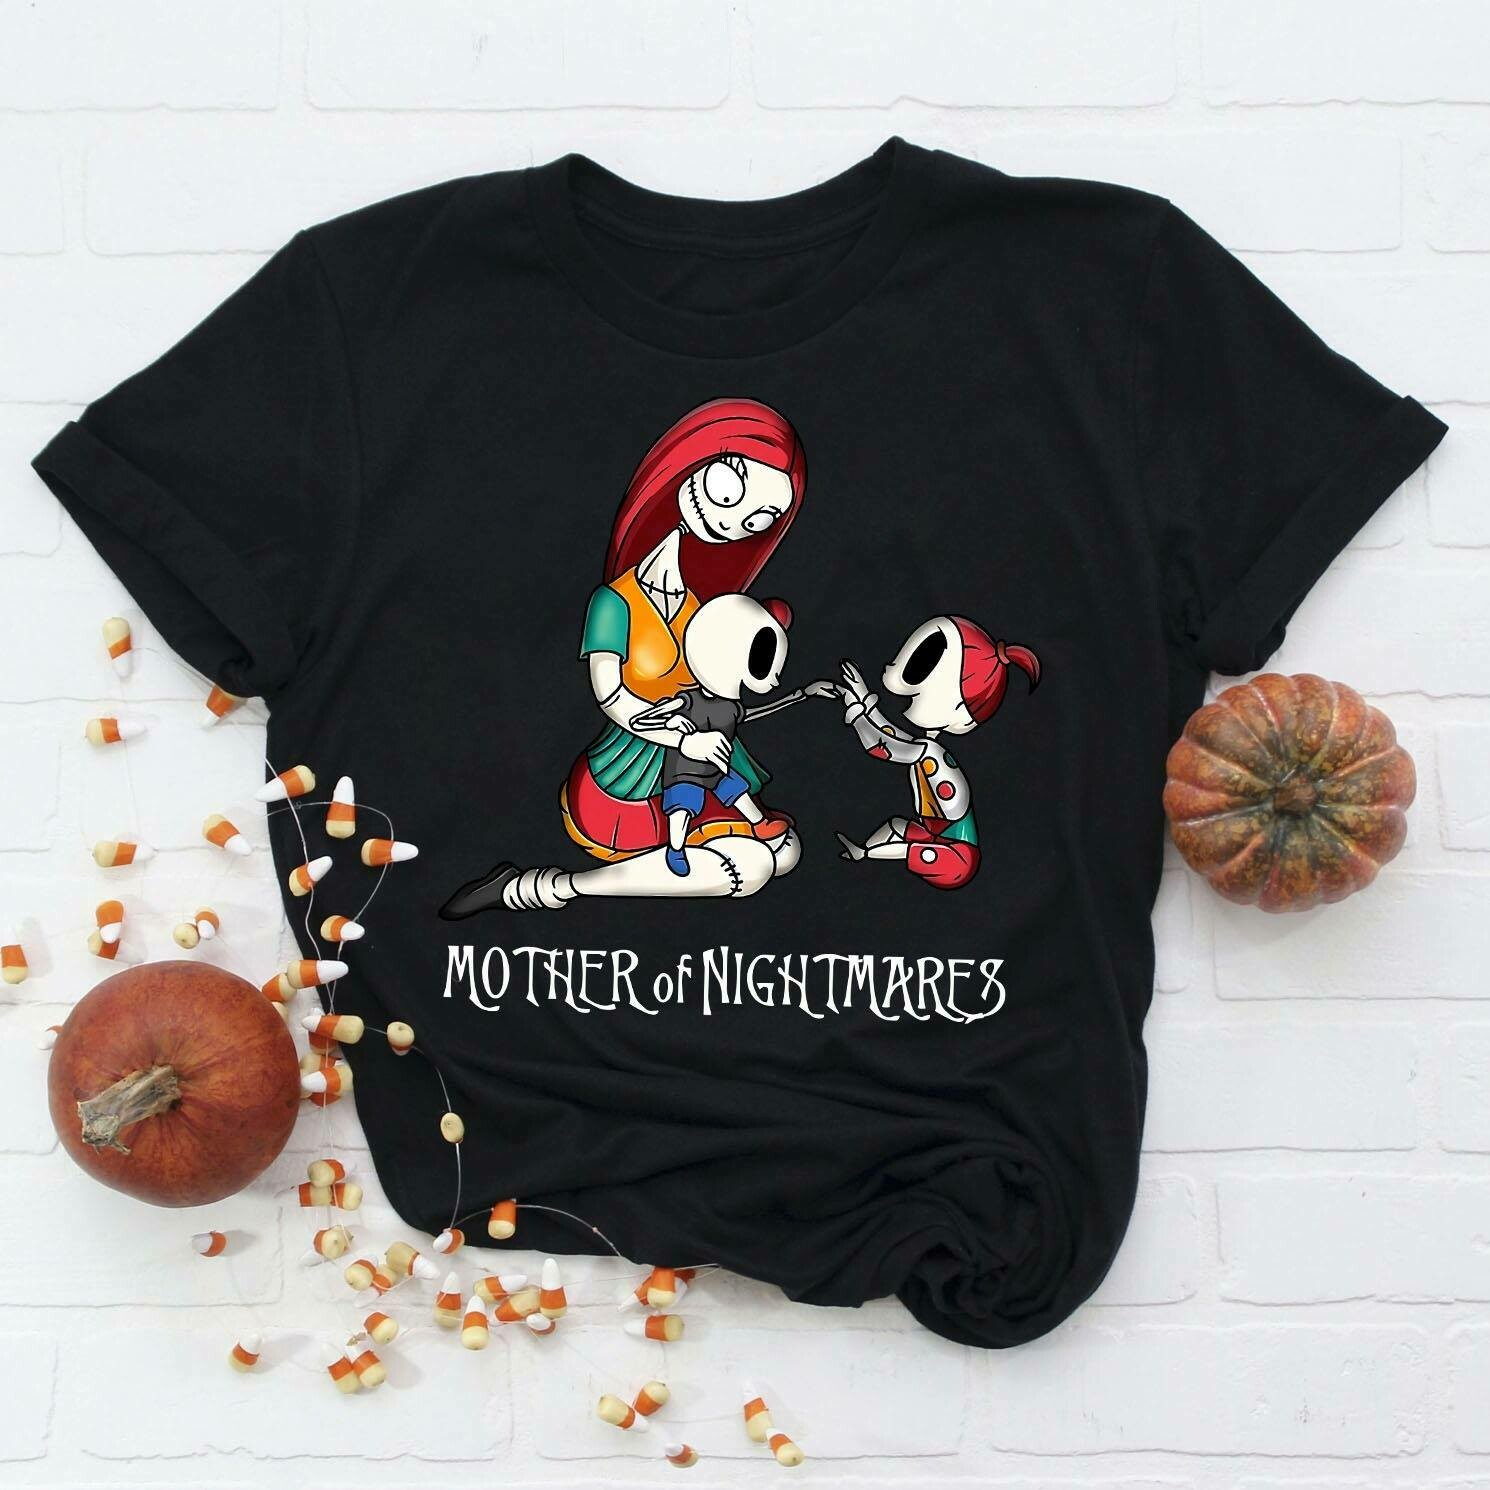 Mother Of Nightmares Shirt, Woman Mother of Halloween, Gift for Mom, Gift for Mother Halloween Shirt, Halloween Costumes for Mothers Gift, Mother of Nightmare, Birthday Gift, Mothers Day Gift